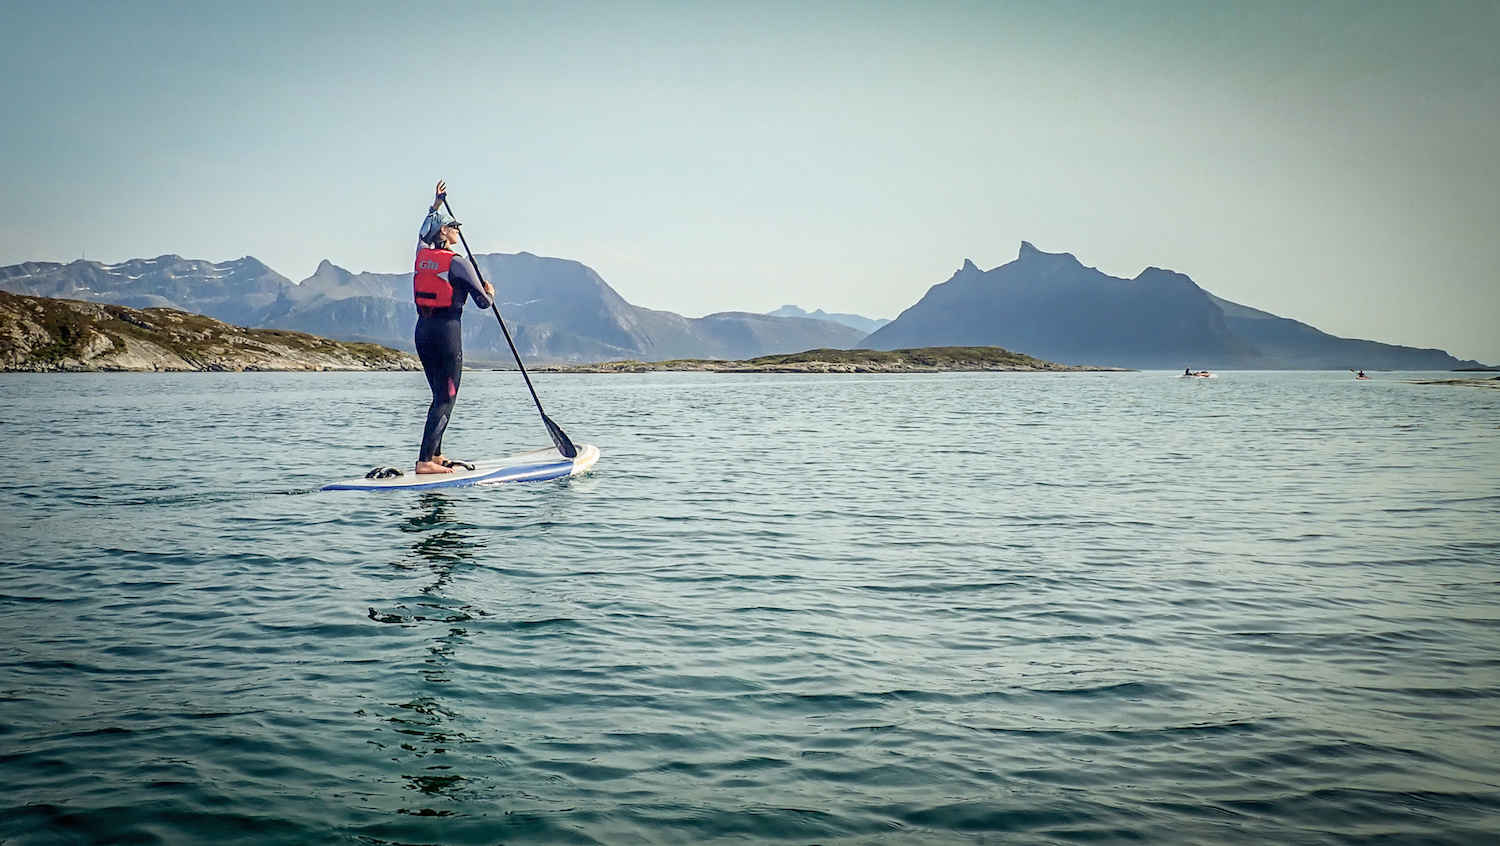 SUPing in the arctic